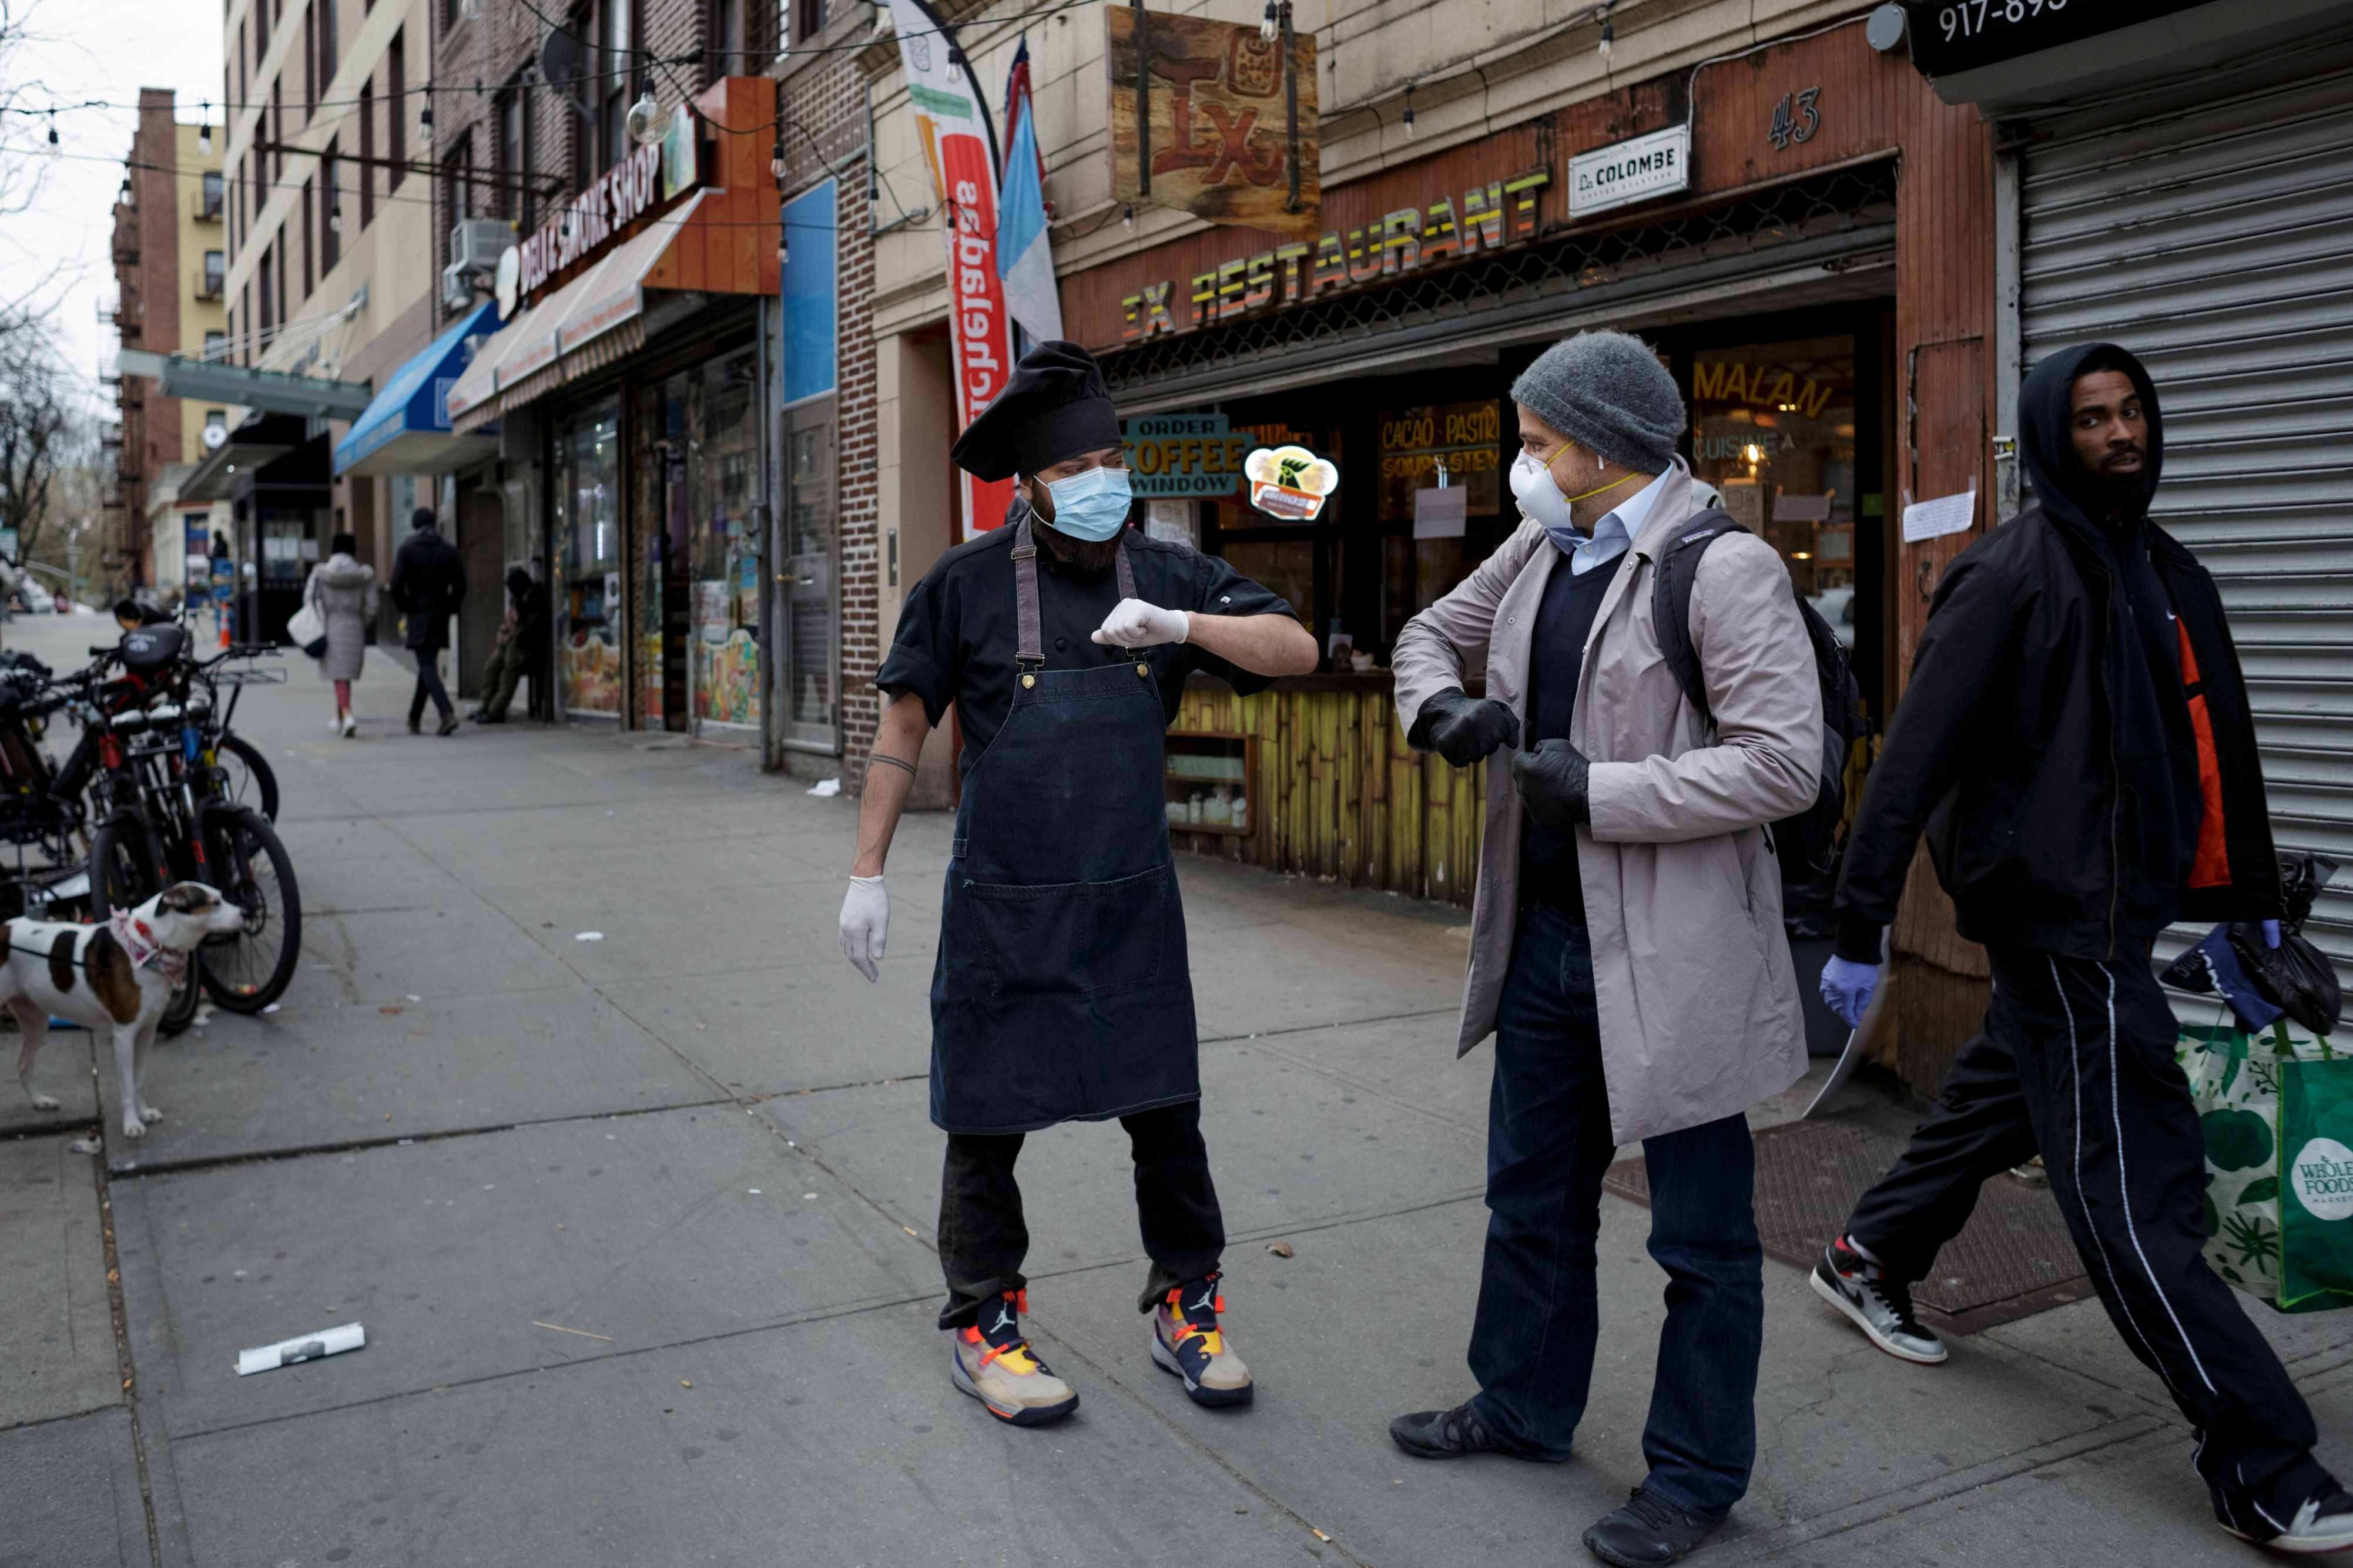 Chef Jorge Cardenas shares an elbow bump with regular Ix customer Lorenzo Bernasconi outside of Ix restaurant in the Brooklyn borough of New York City, U.S., on April 2, 2020 amid the CCP virus outbreak. (Anna Watts/Reuters)